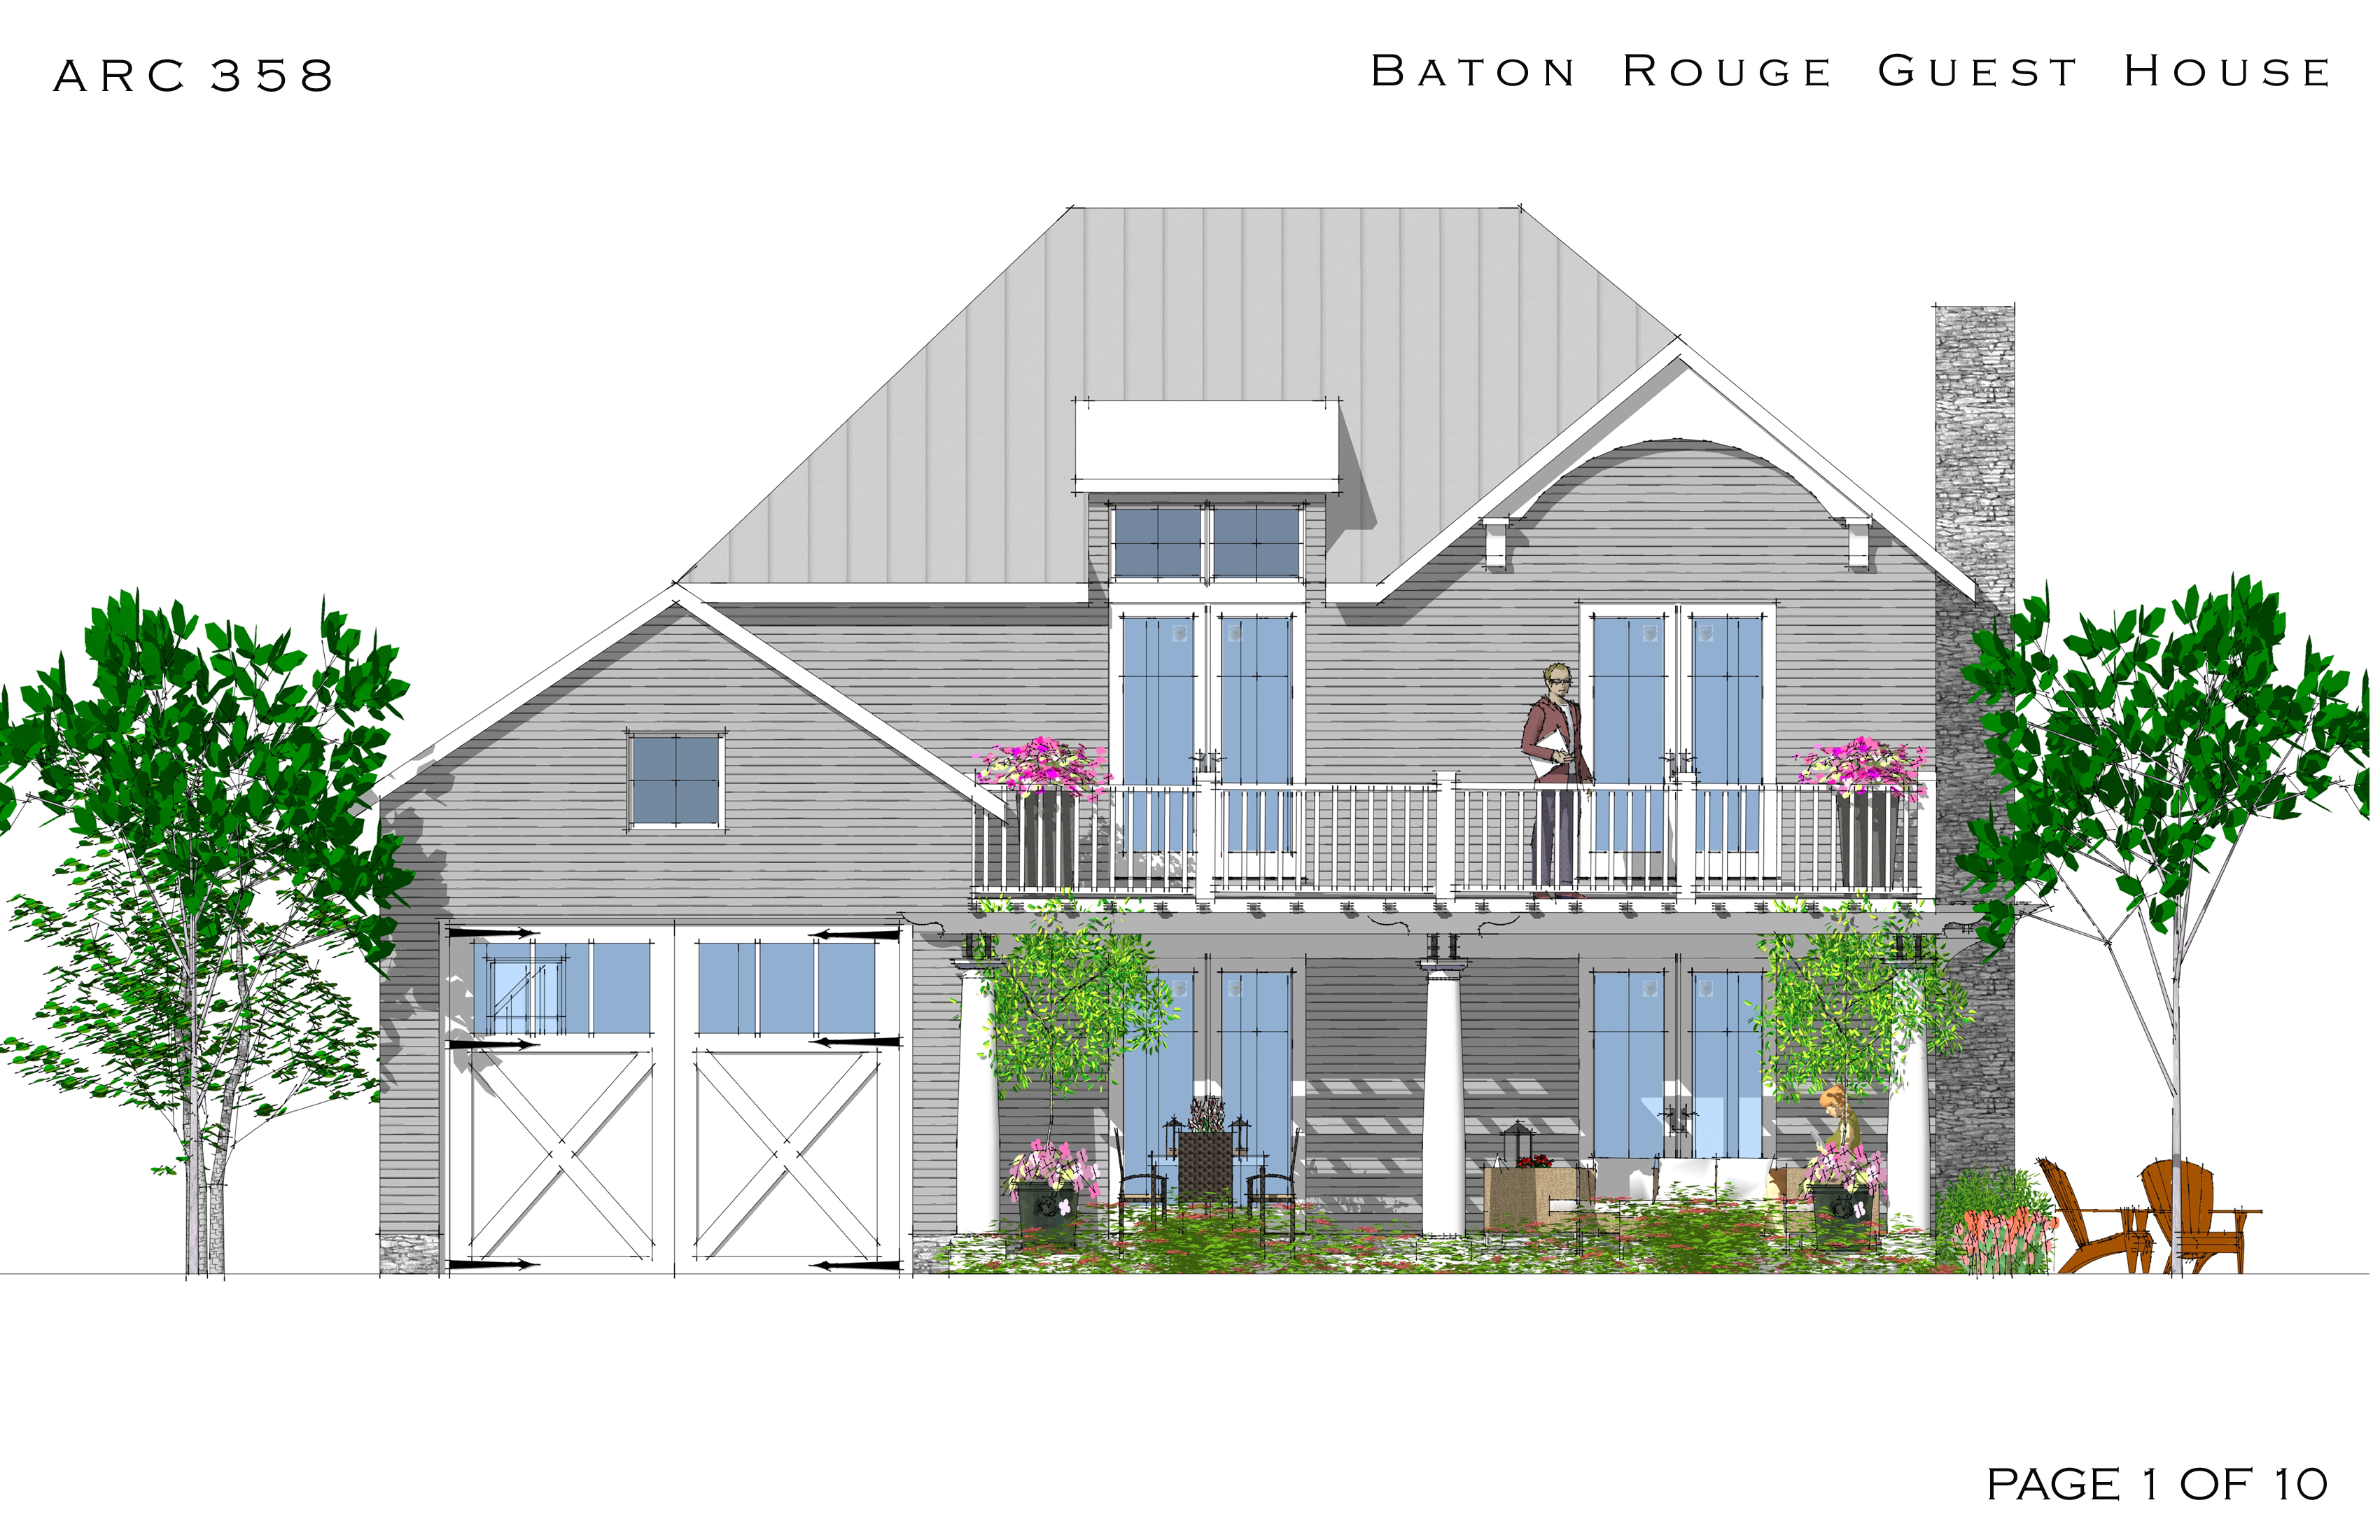 custom home designs baton rouge la cool designs on custom home plans. Interior Design Ideas. Home Design Ideas